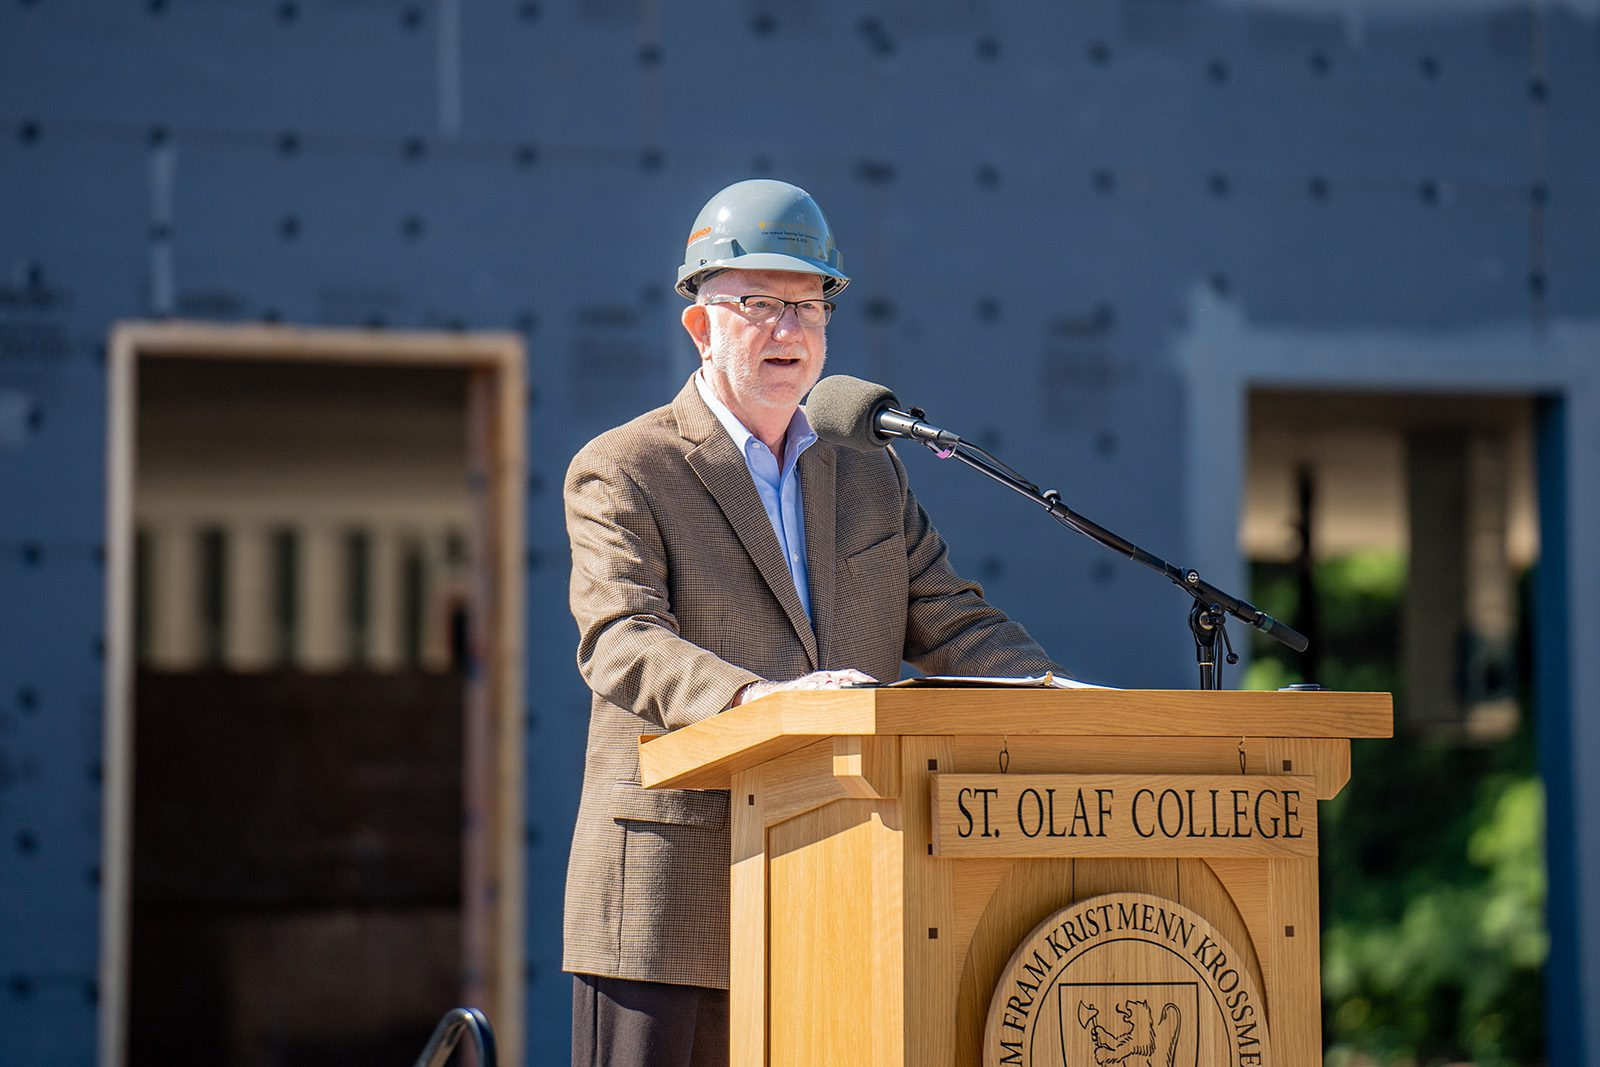 St. Olaf President David R. Anderson '74 speaks at the topping out ceremony for the new residence hall.